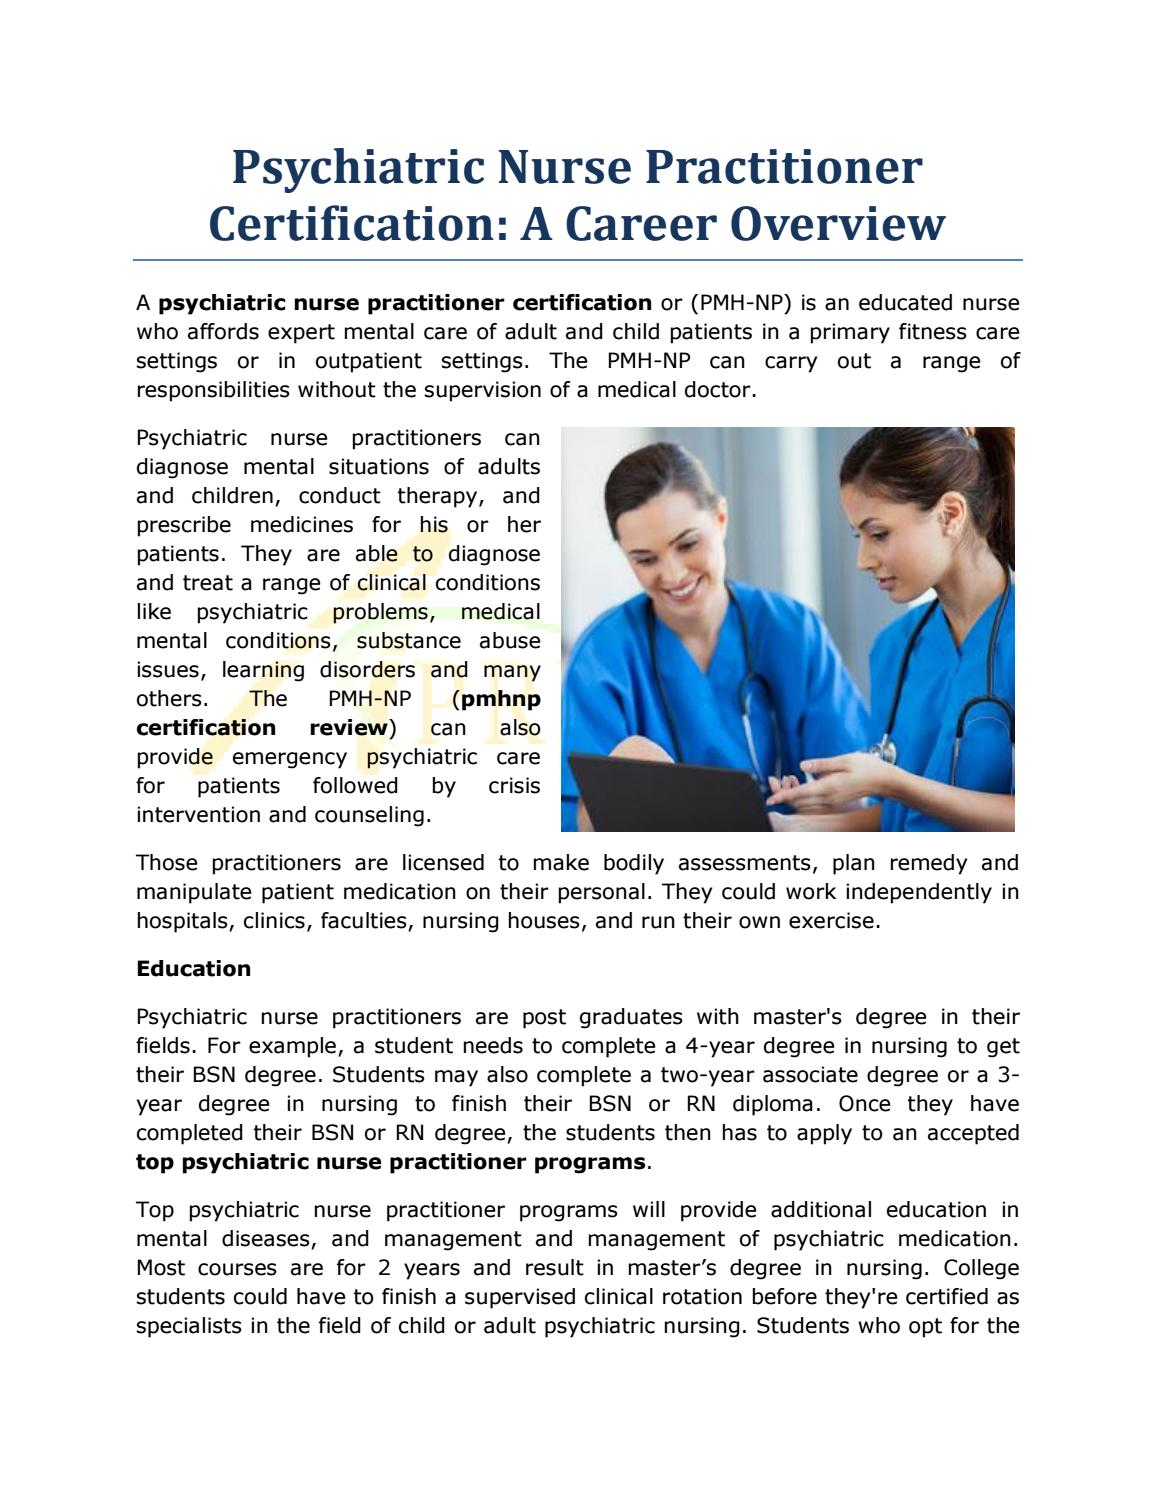 Psychiatric Nurse Practitioner Certification A Career Overview By